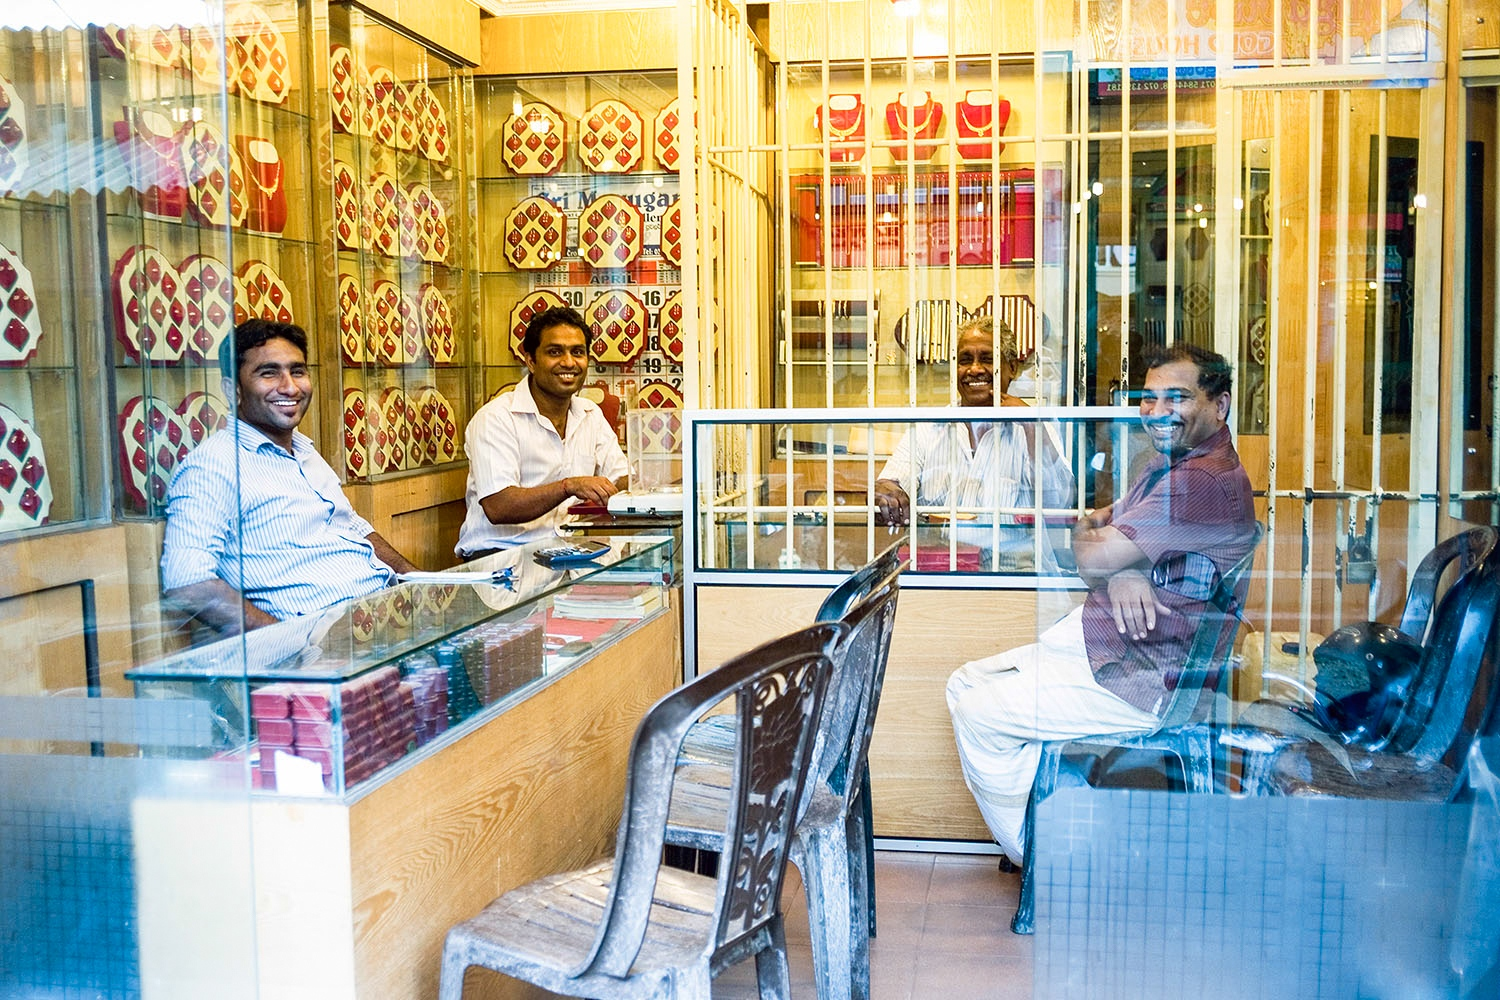 A family run jewelry business in the centre of Puttalam. In October 1990, The LTTE announced that the Muslim community of Jaffna Penisula, in the Northern Privince had 24 hours to leave their homes. Many of the displaced Muslim community settled in Puttalam. This was the largest forced eviction of Muslims during Sri Lankas civil war. Researchers estimate that close to 75,000 people were forced to leave without any of their belongings, land deeds or money totaling more that US$2.25.